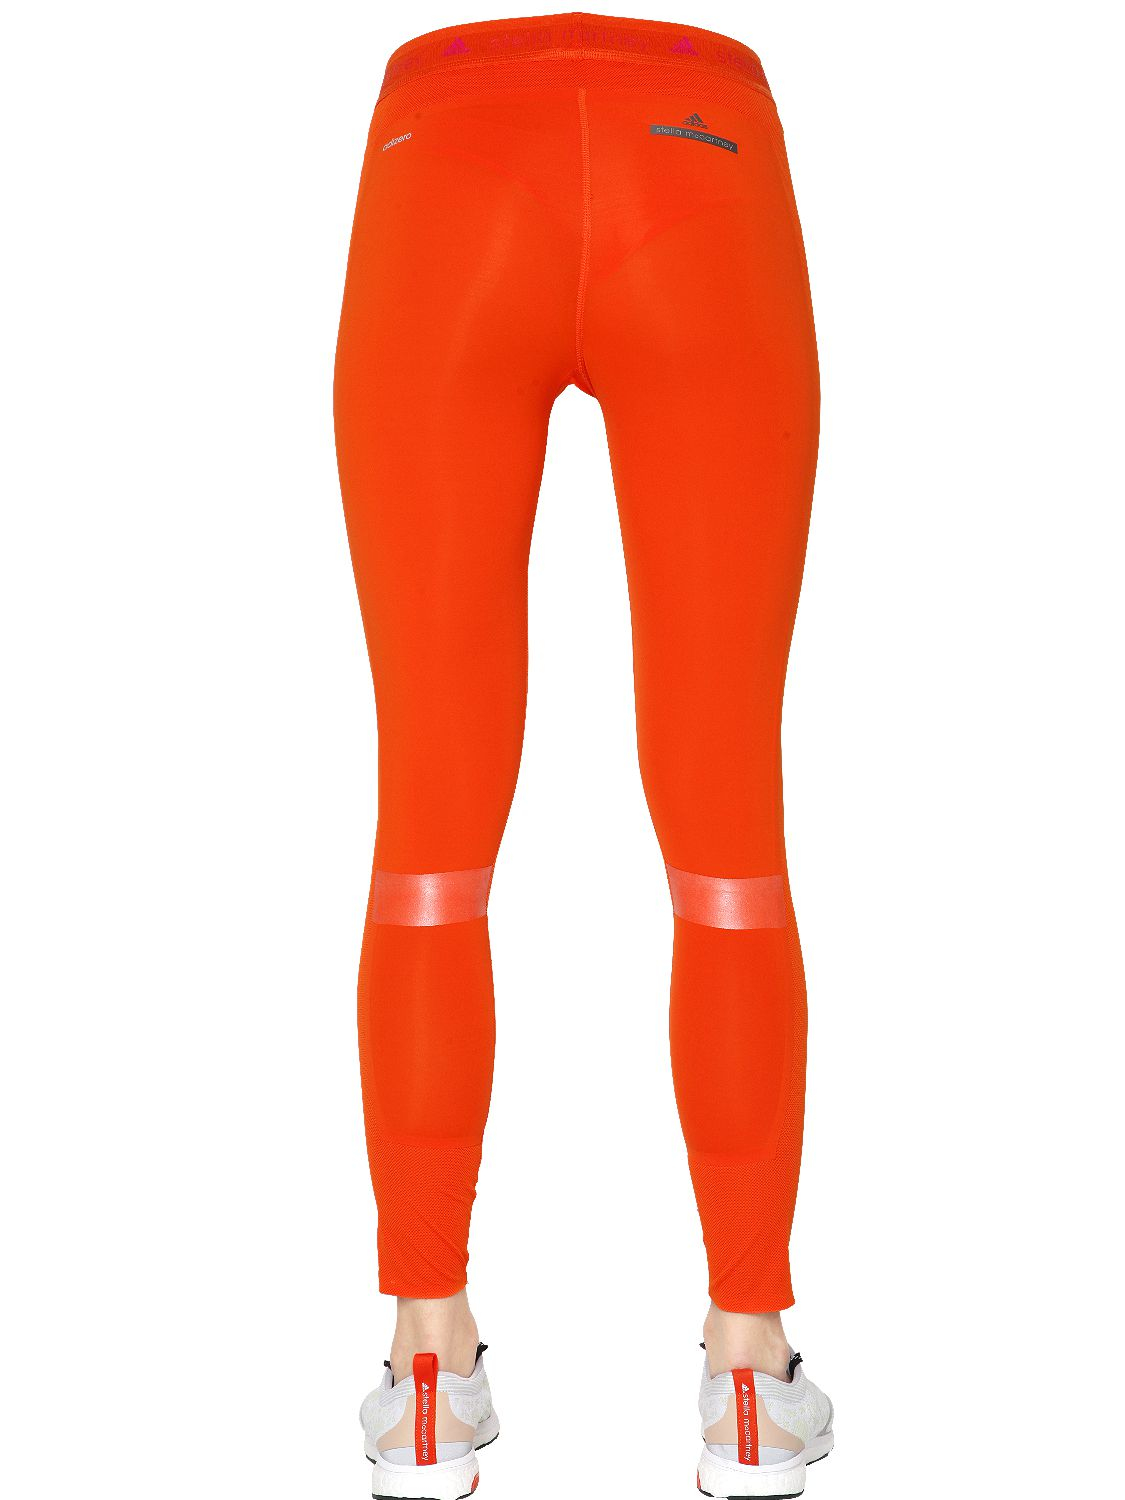 free shipping be8e0 5709d Lyst - adidas By Stella McCartney Adizero Tight Fit Running Leggings ...